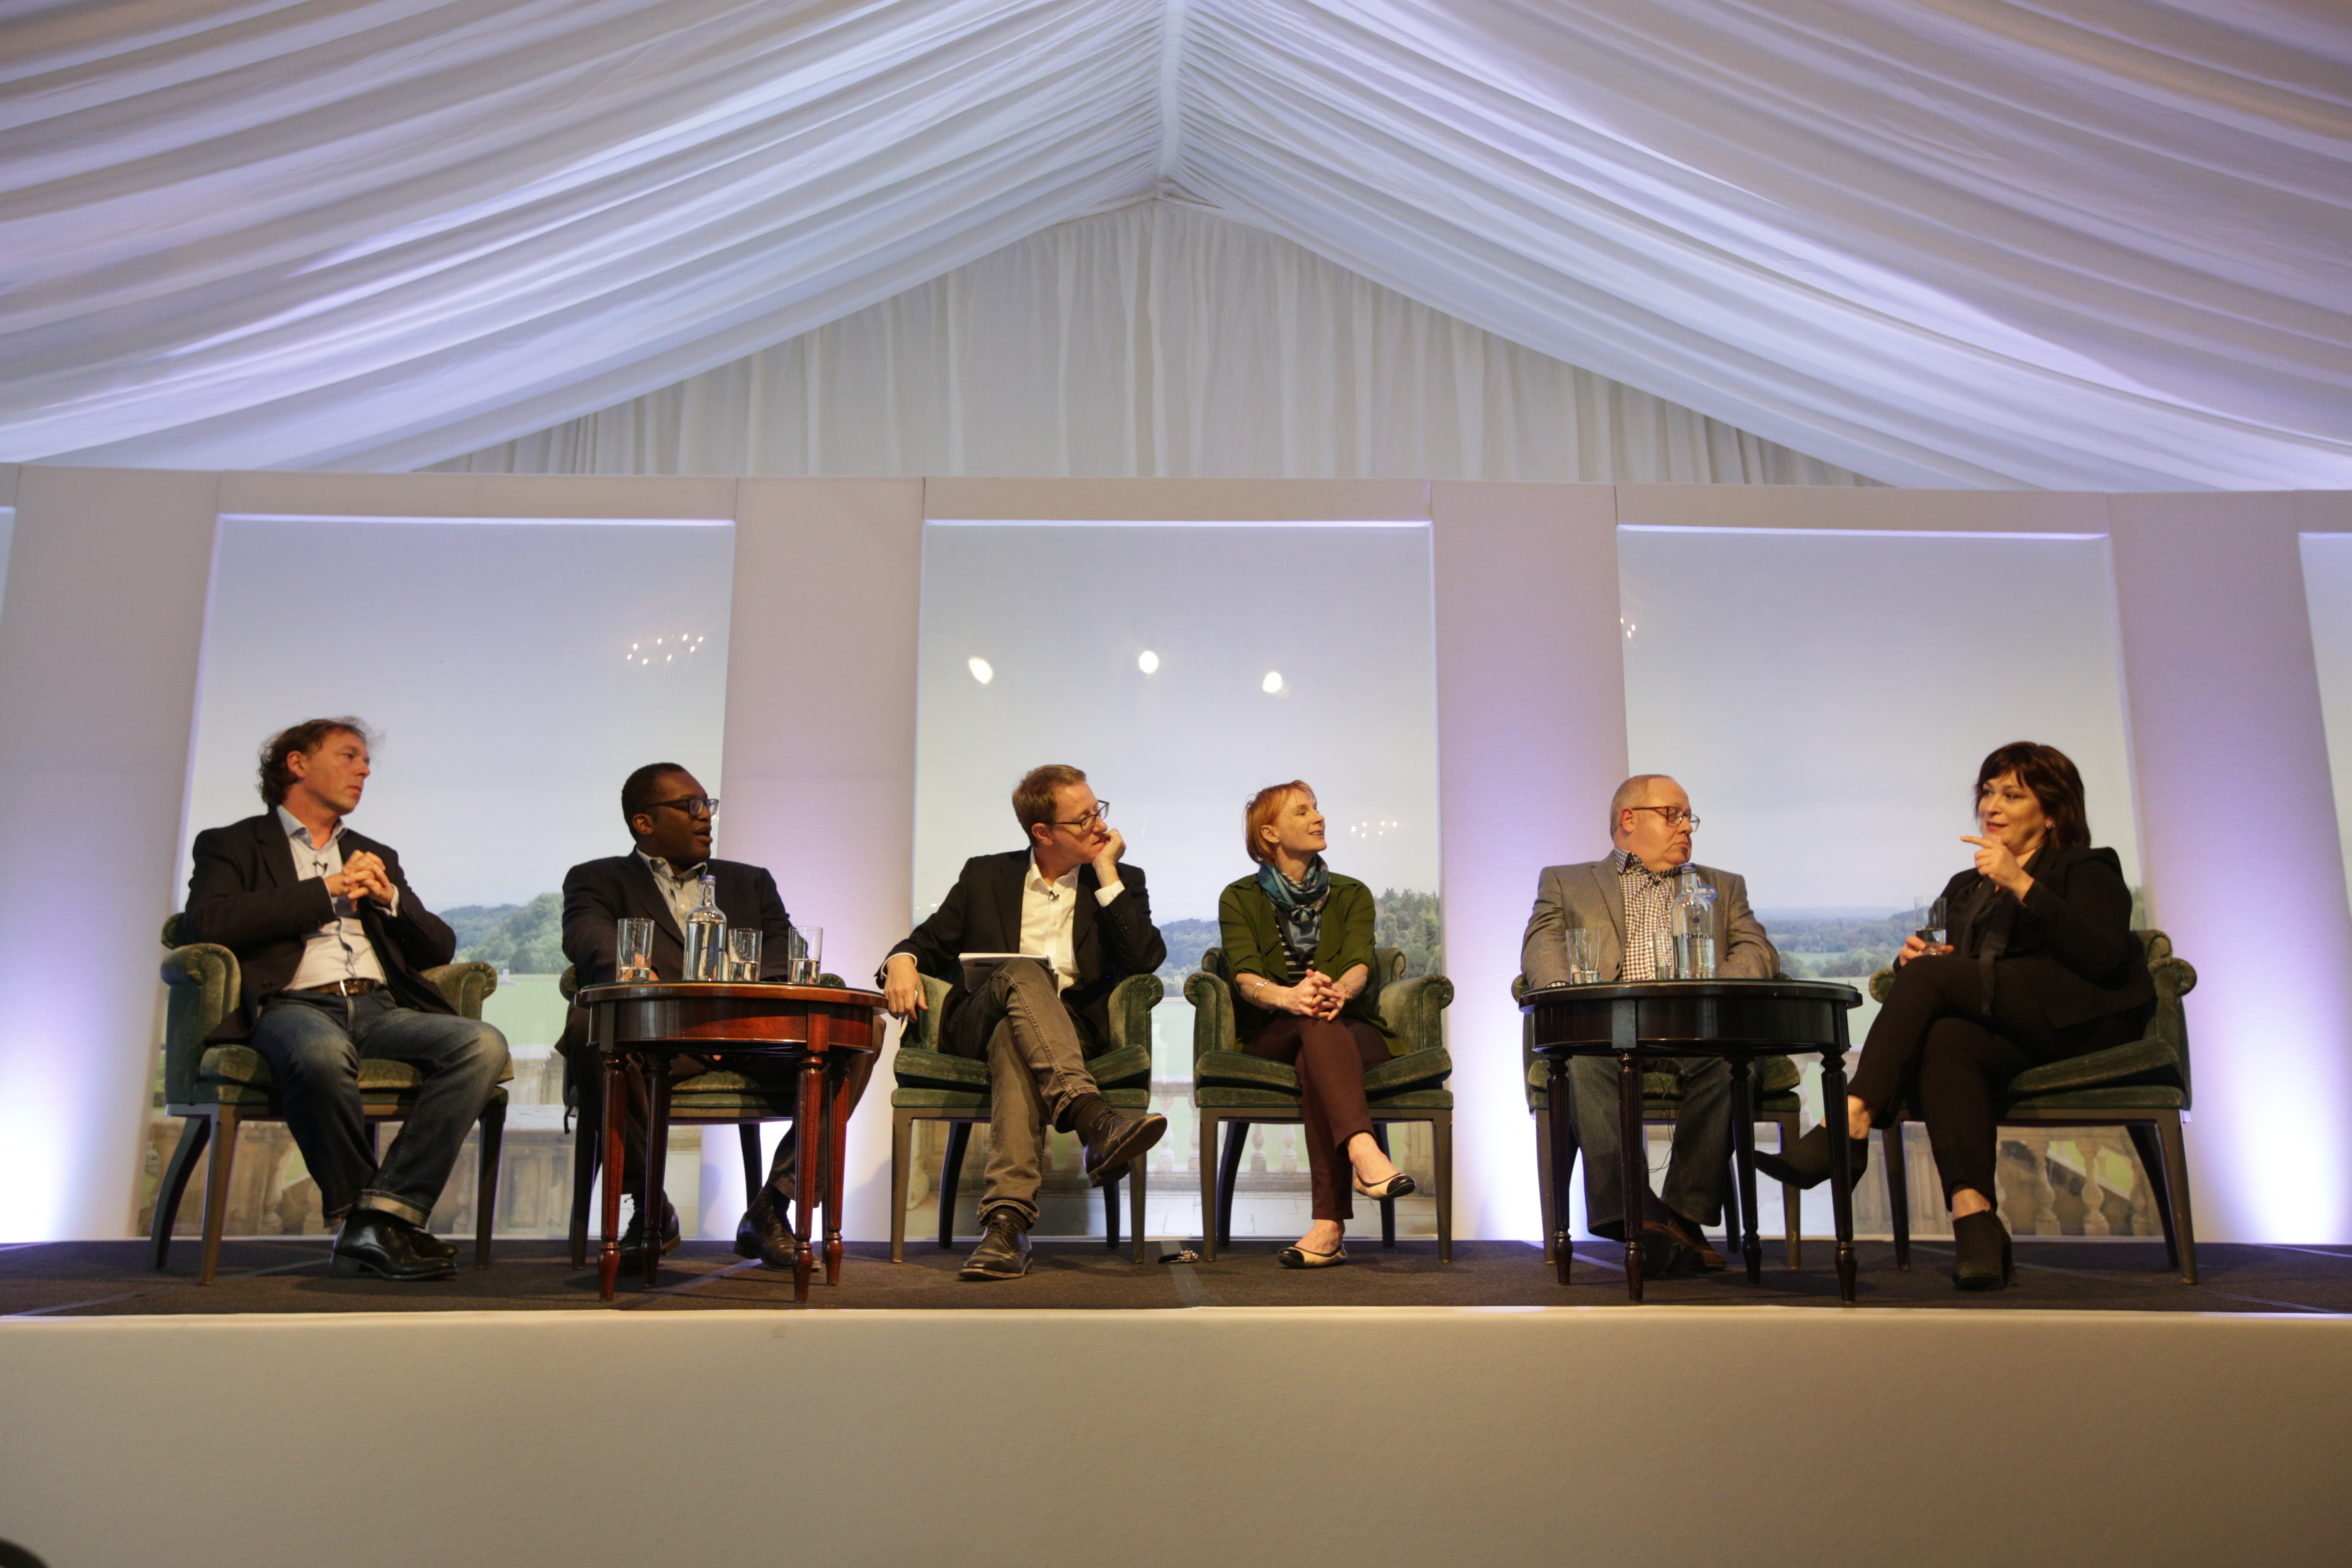 Philip Collins, Kwasi Kwarteng, Jonathan Freedland, Anne McElvoy, Stephen Pollard and Sarah Vine on The Arts Club Stage at Cliveden Literary Festival